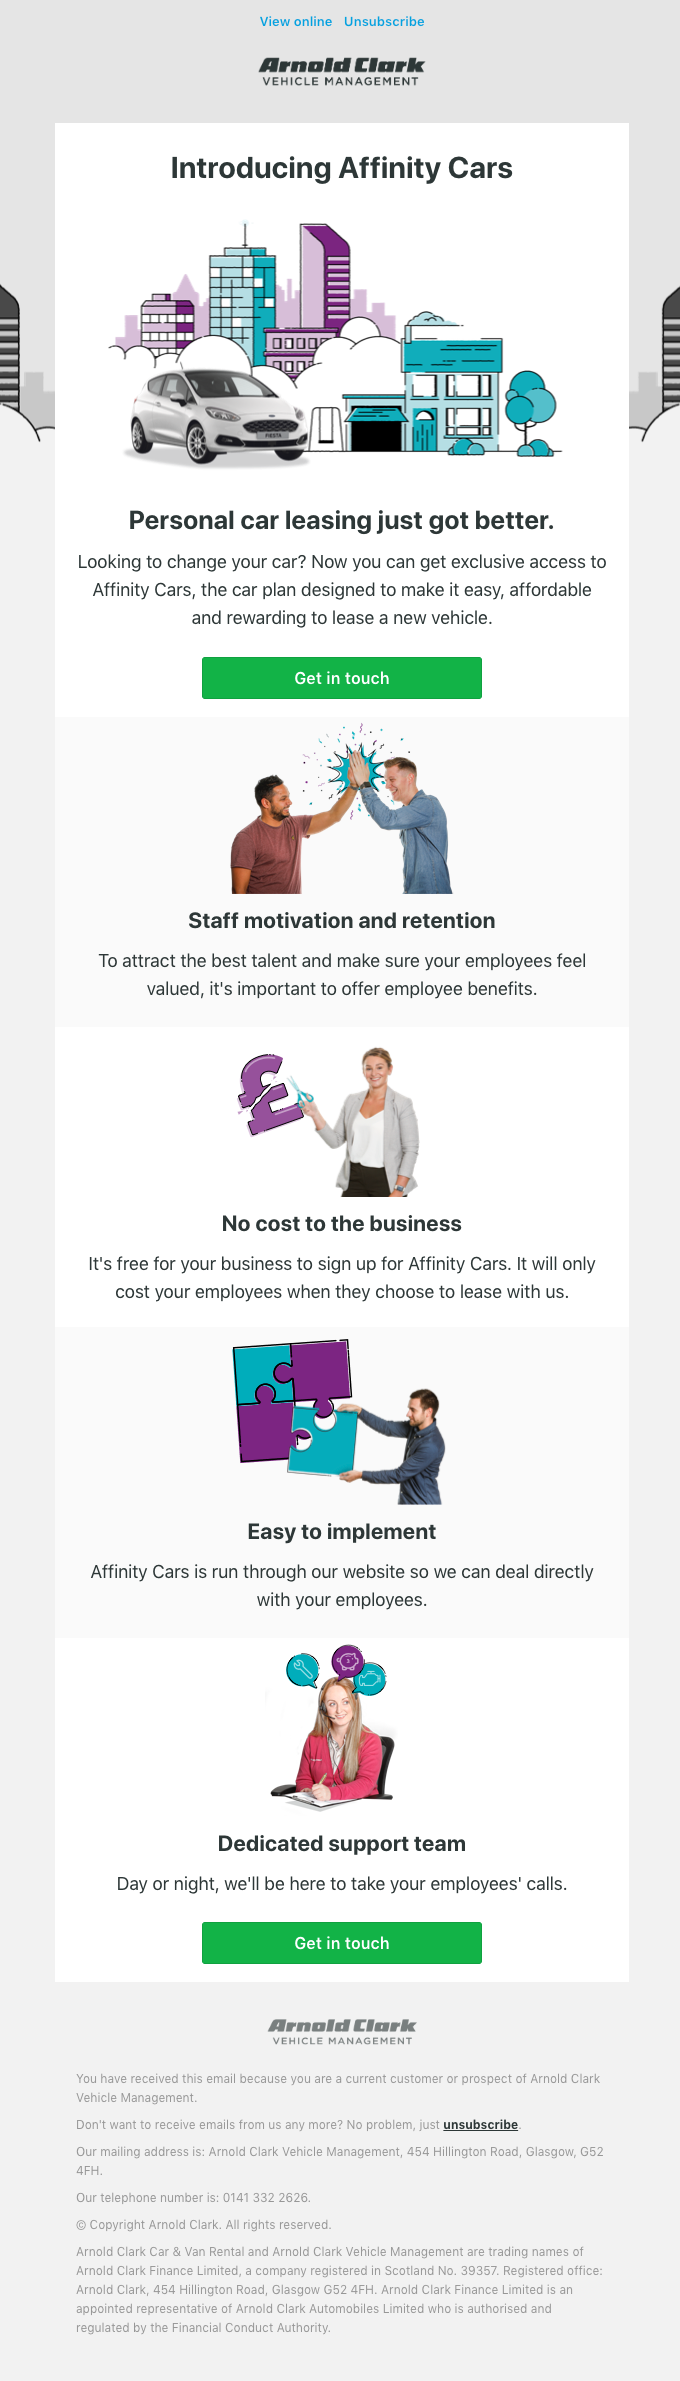 Personal car leasing for your employees